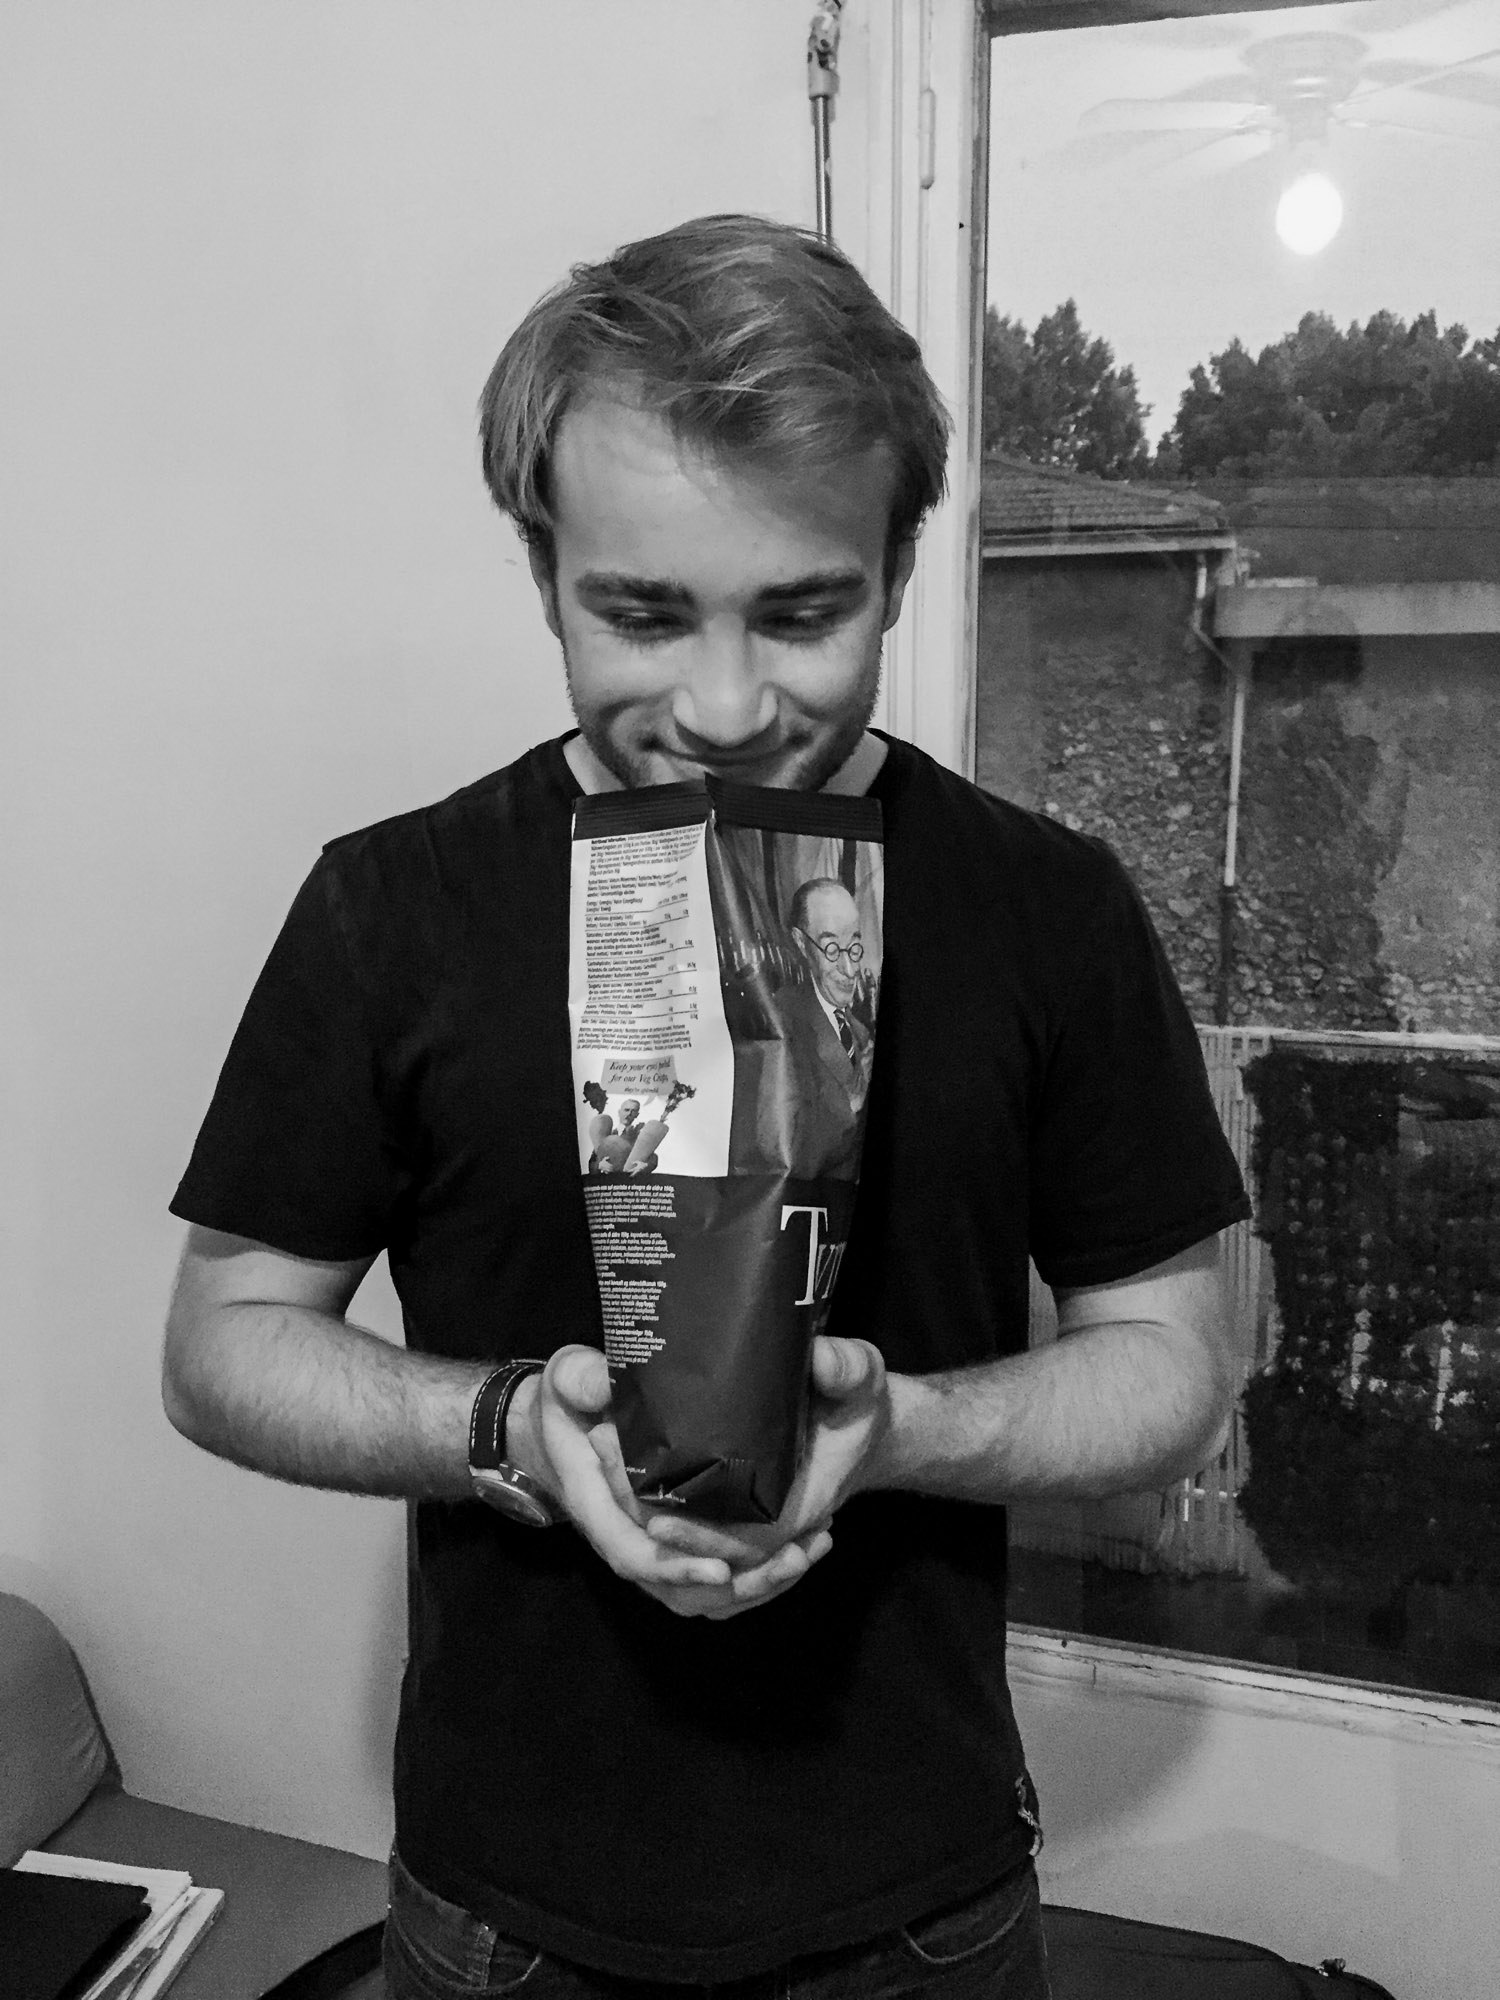 Matt proving his occasional English accent has merit by eating some DELICIOUS English chips. You'd think that chips can't do that much; they're just chips. But look at Matt's face. World-changing chips right there in our Airbnb.